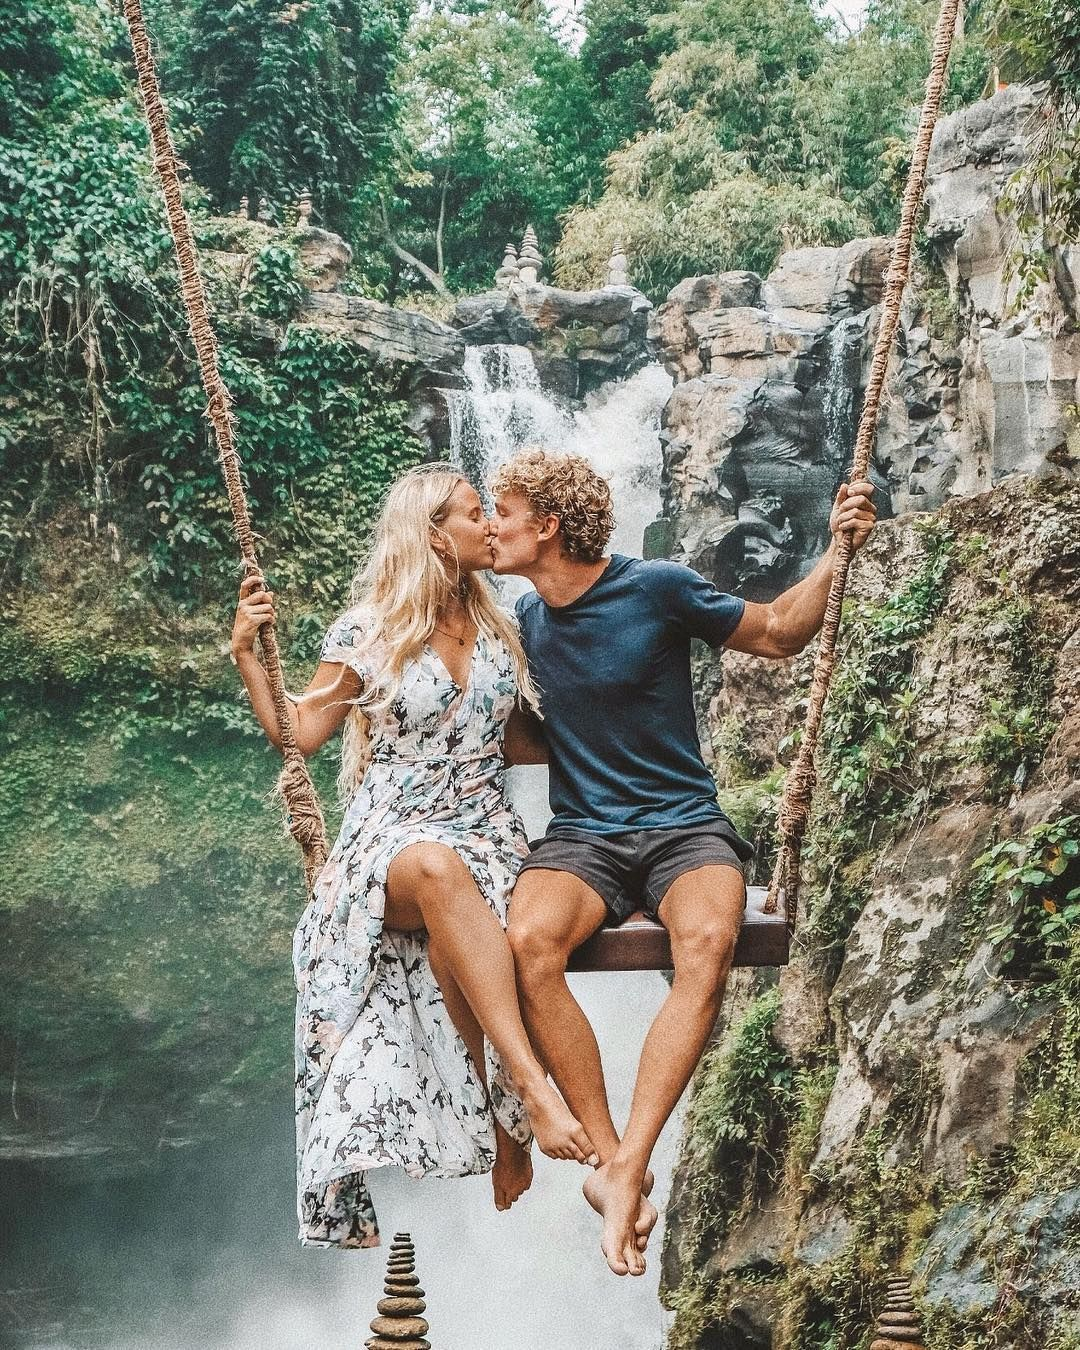 Merel Gebe on Instagram Merel #merelgebe tegenungang waterfall bali swing dress love couple goals travel inspo ideas summer cute #interiordesignideas #interiordesignbedroom #style #shopping #styles #outfit #pretty #girl #girls #beauty #beautiful #me #cute #stylish #photooftheday #swag #dress #shoes #diy #design #fashion #Travel